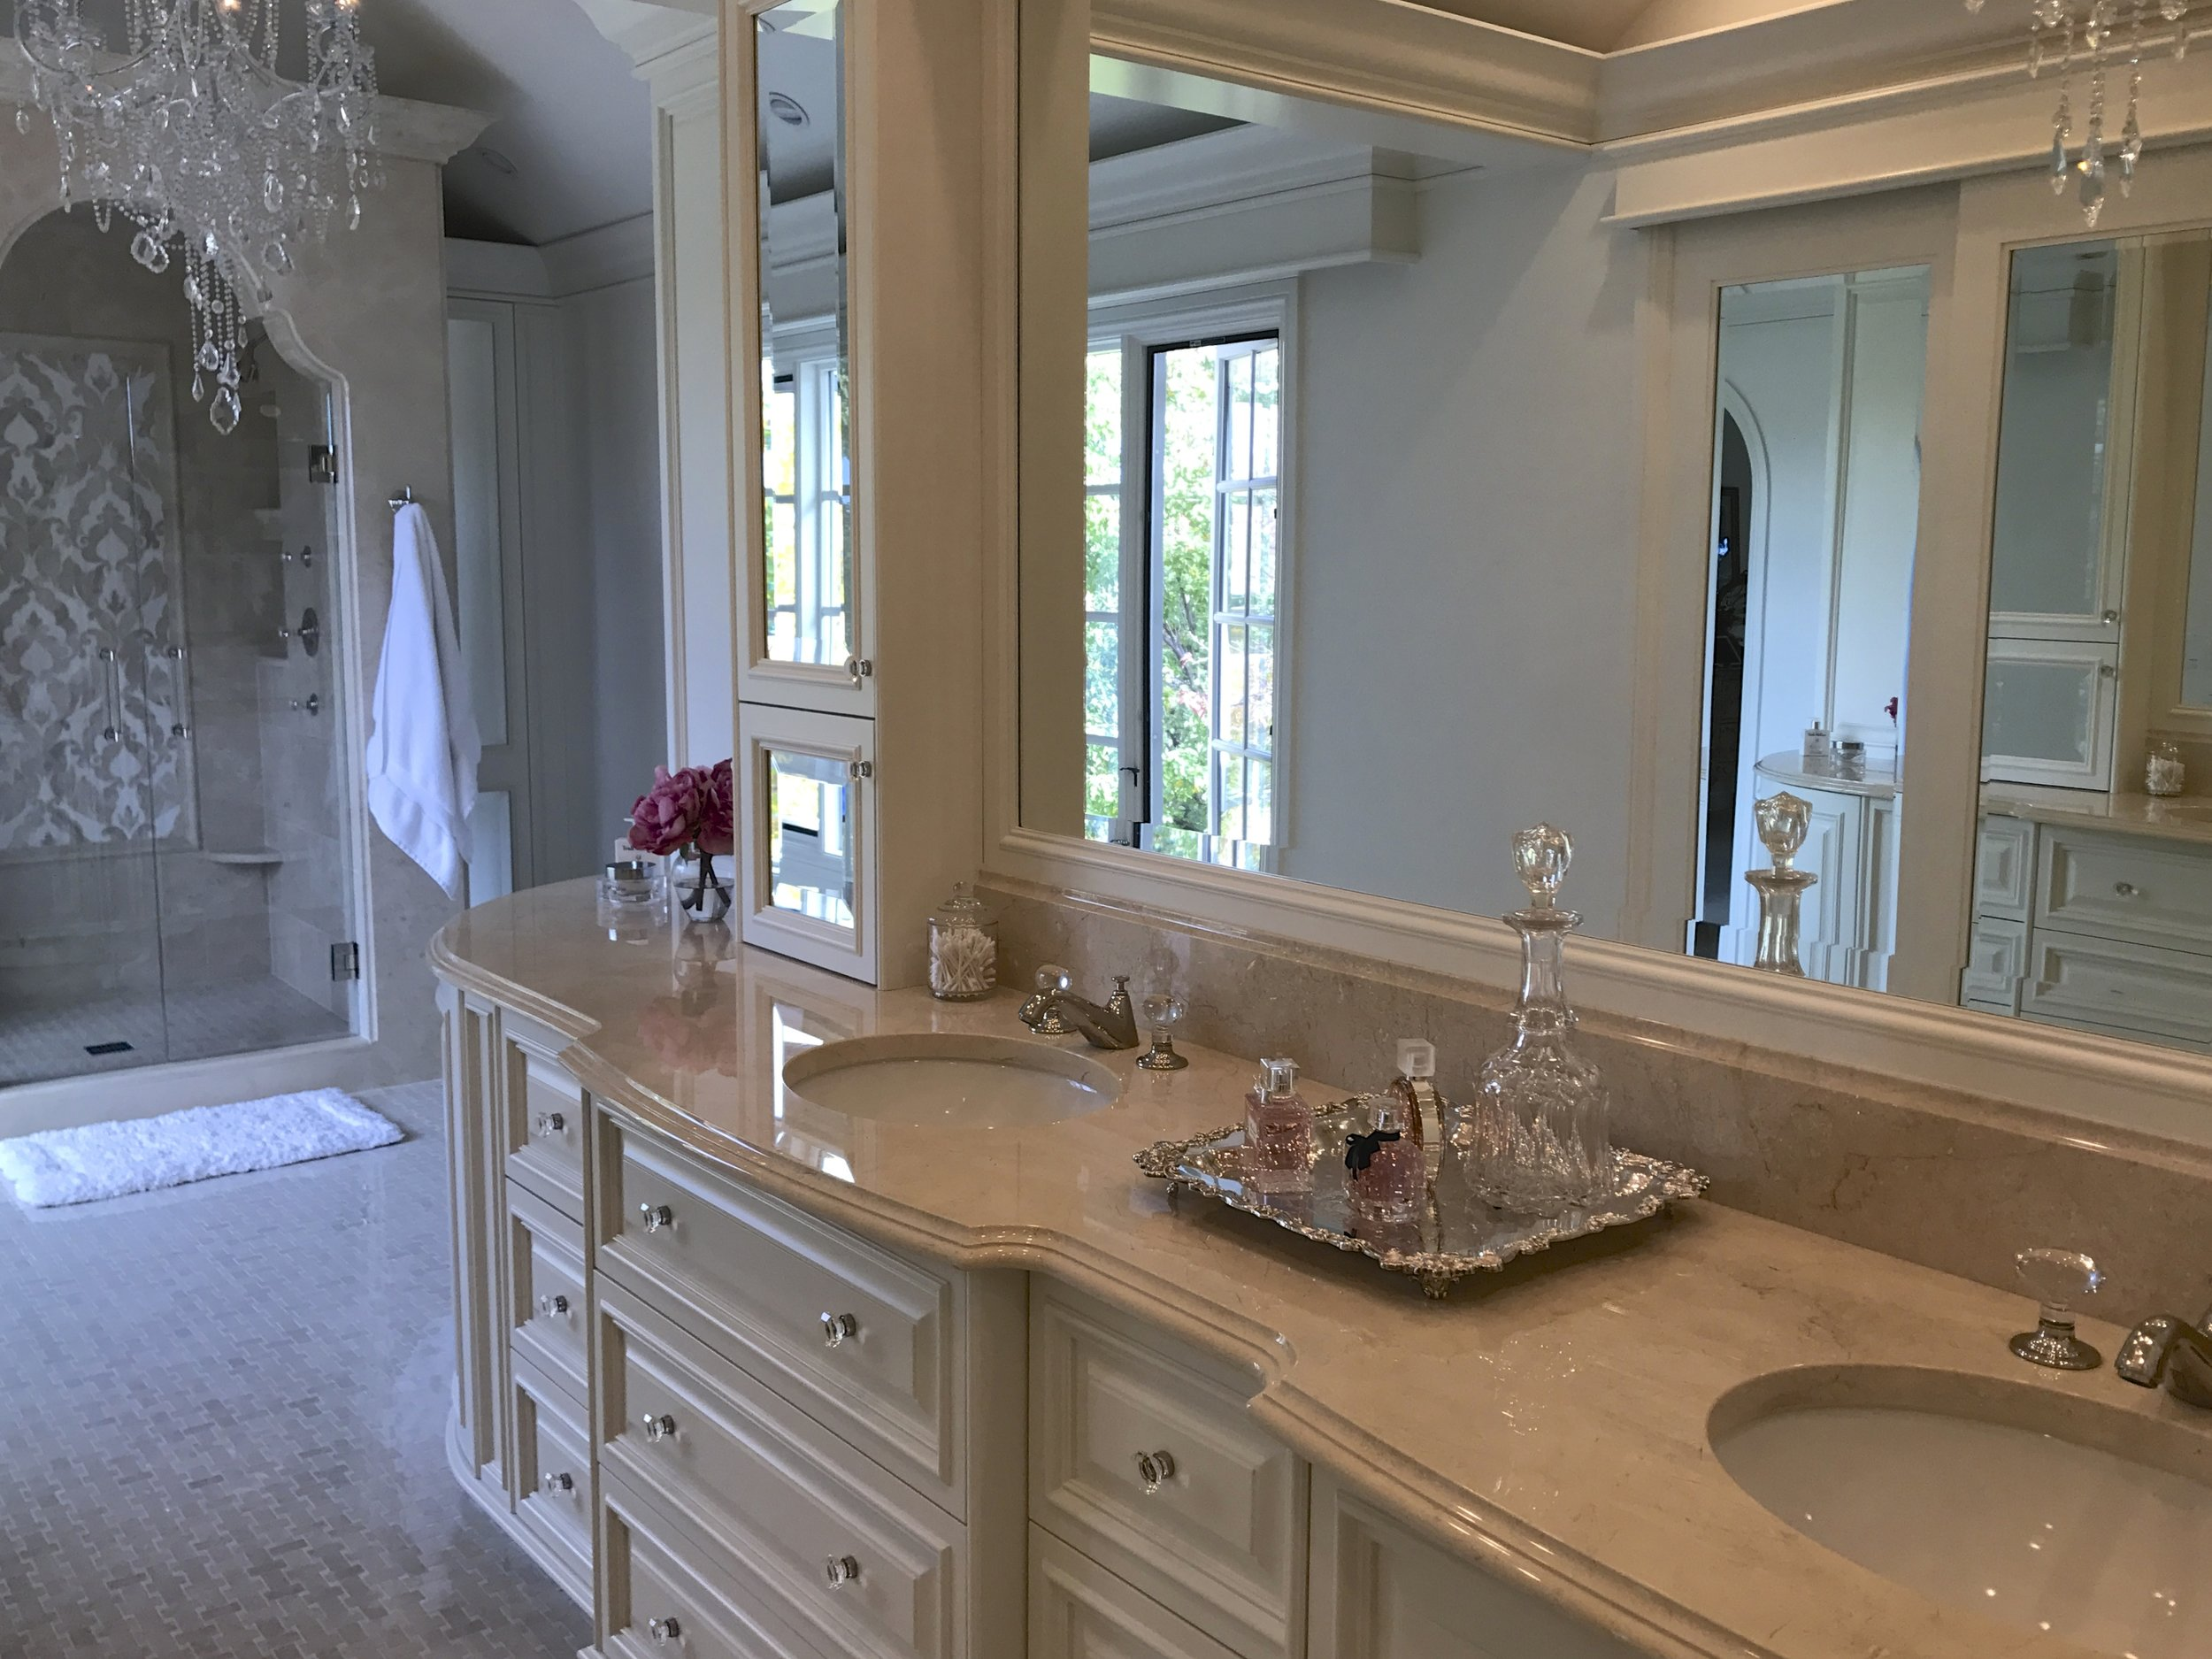 The above countertop cabinet is deeper than it appears.  It is recessed behind the mirror.  Inside is ample storage with electrical plugs for appliances that pull out.